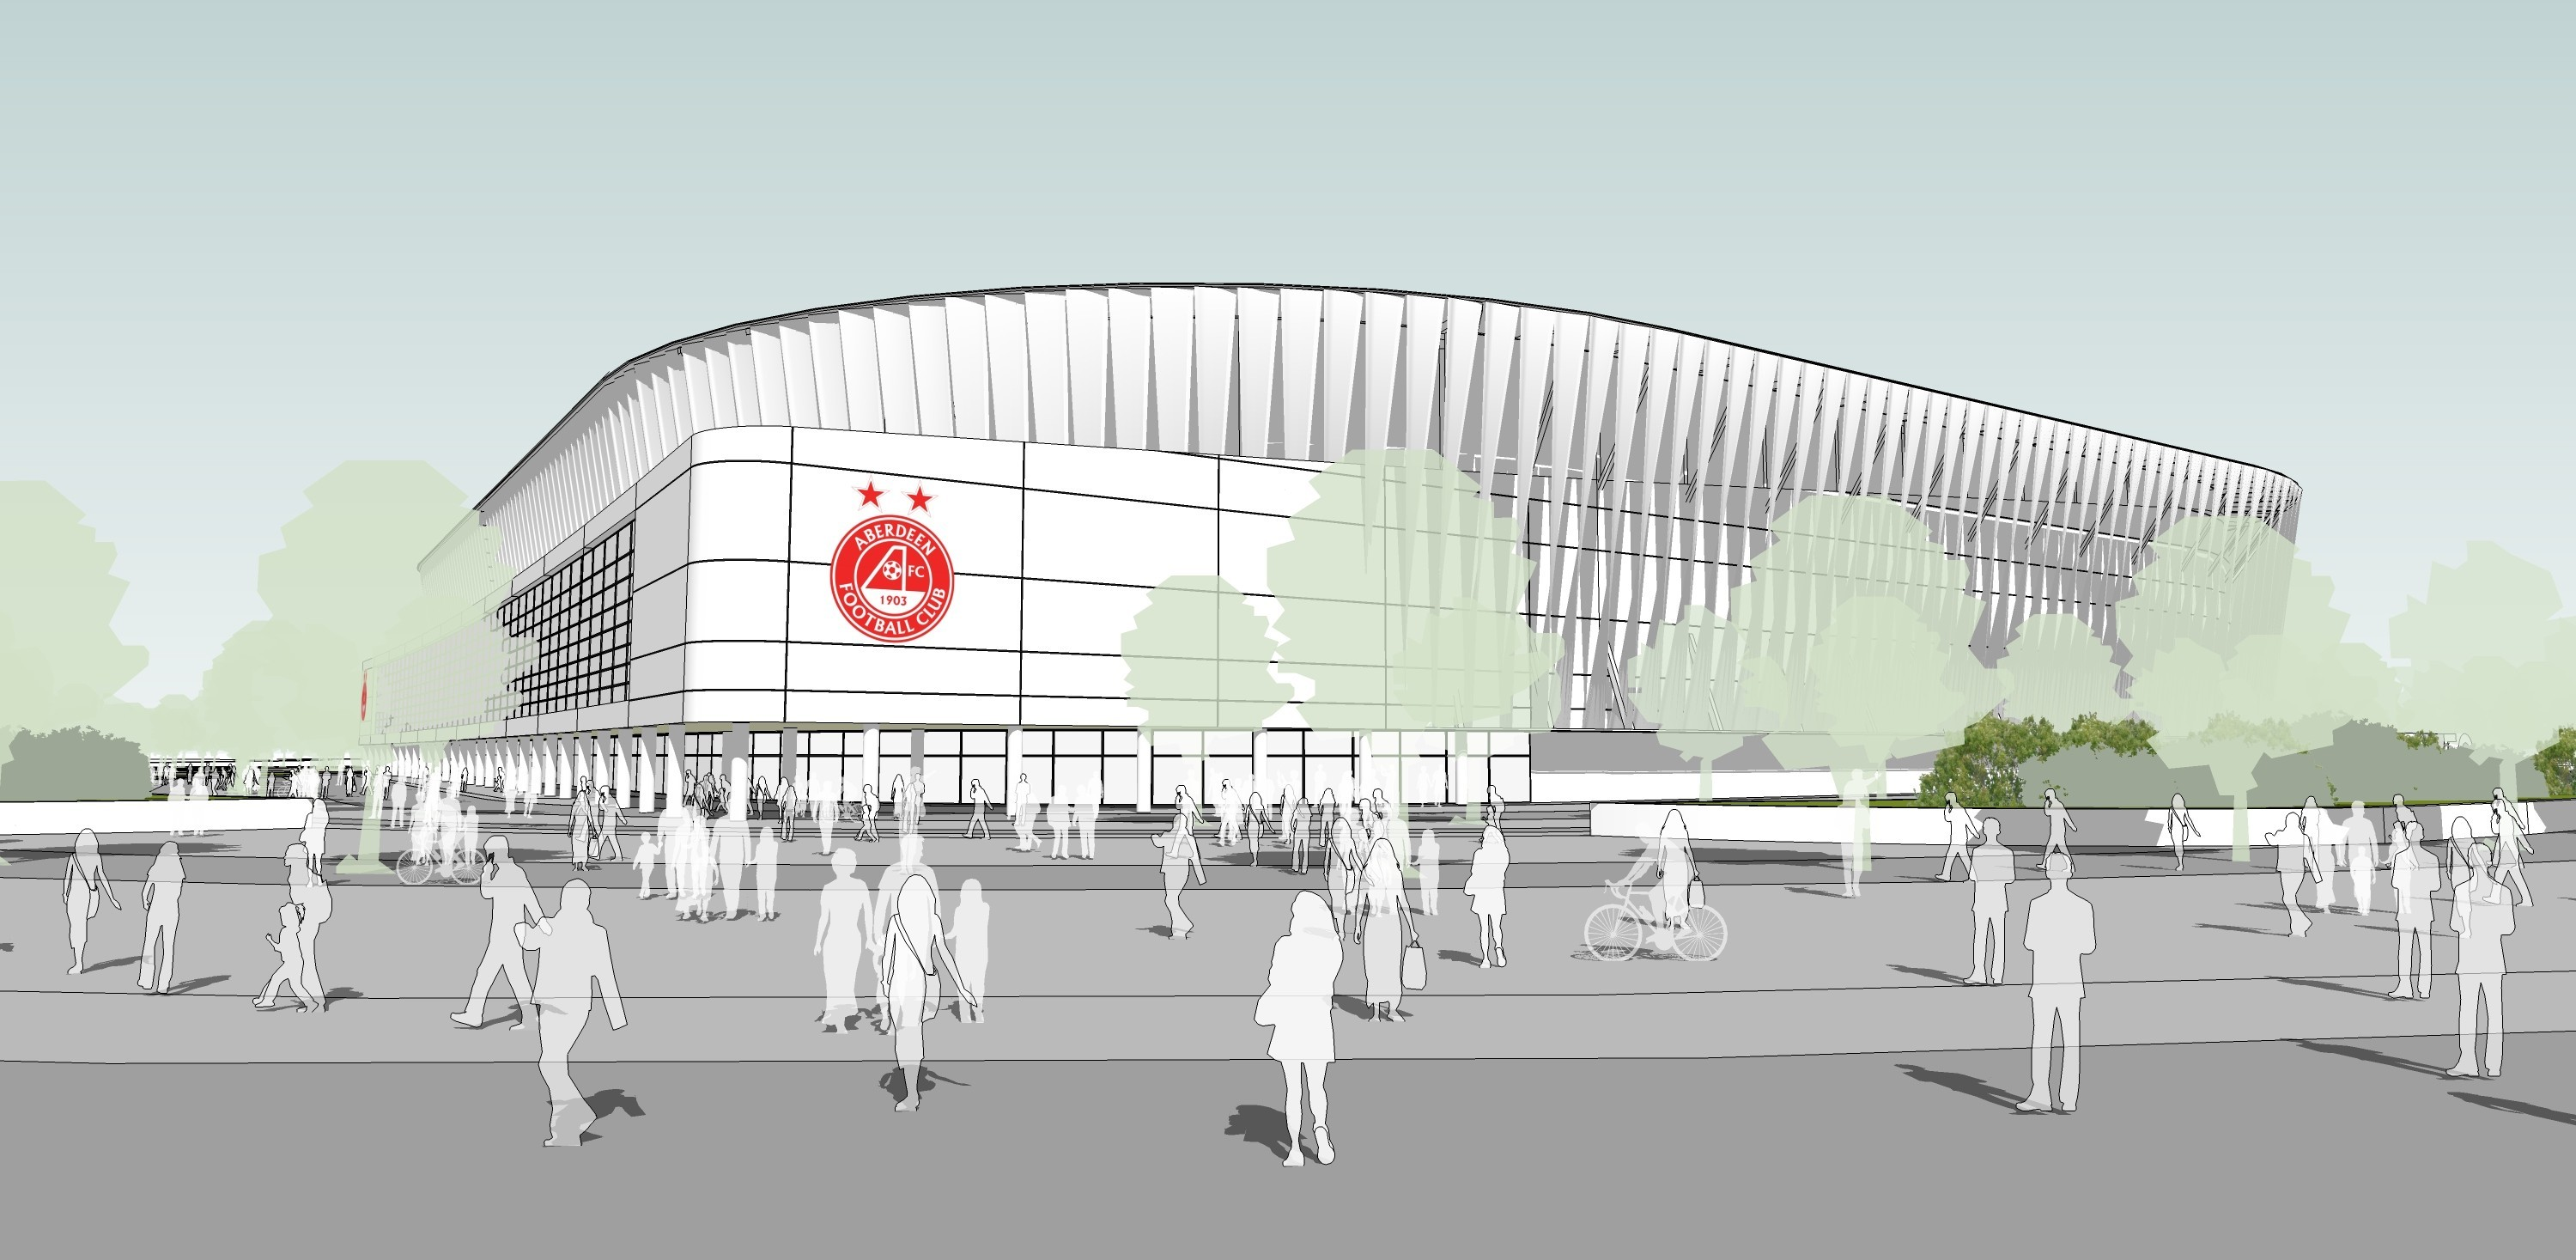 modern: An artist's impression of how the Dons' proposed new 20,000-seater stadium and facilities at Kingsford could look.